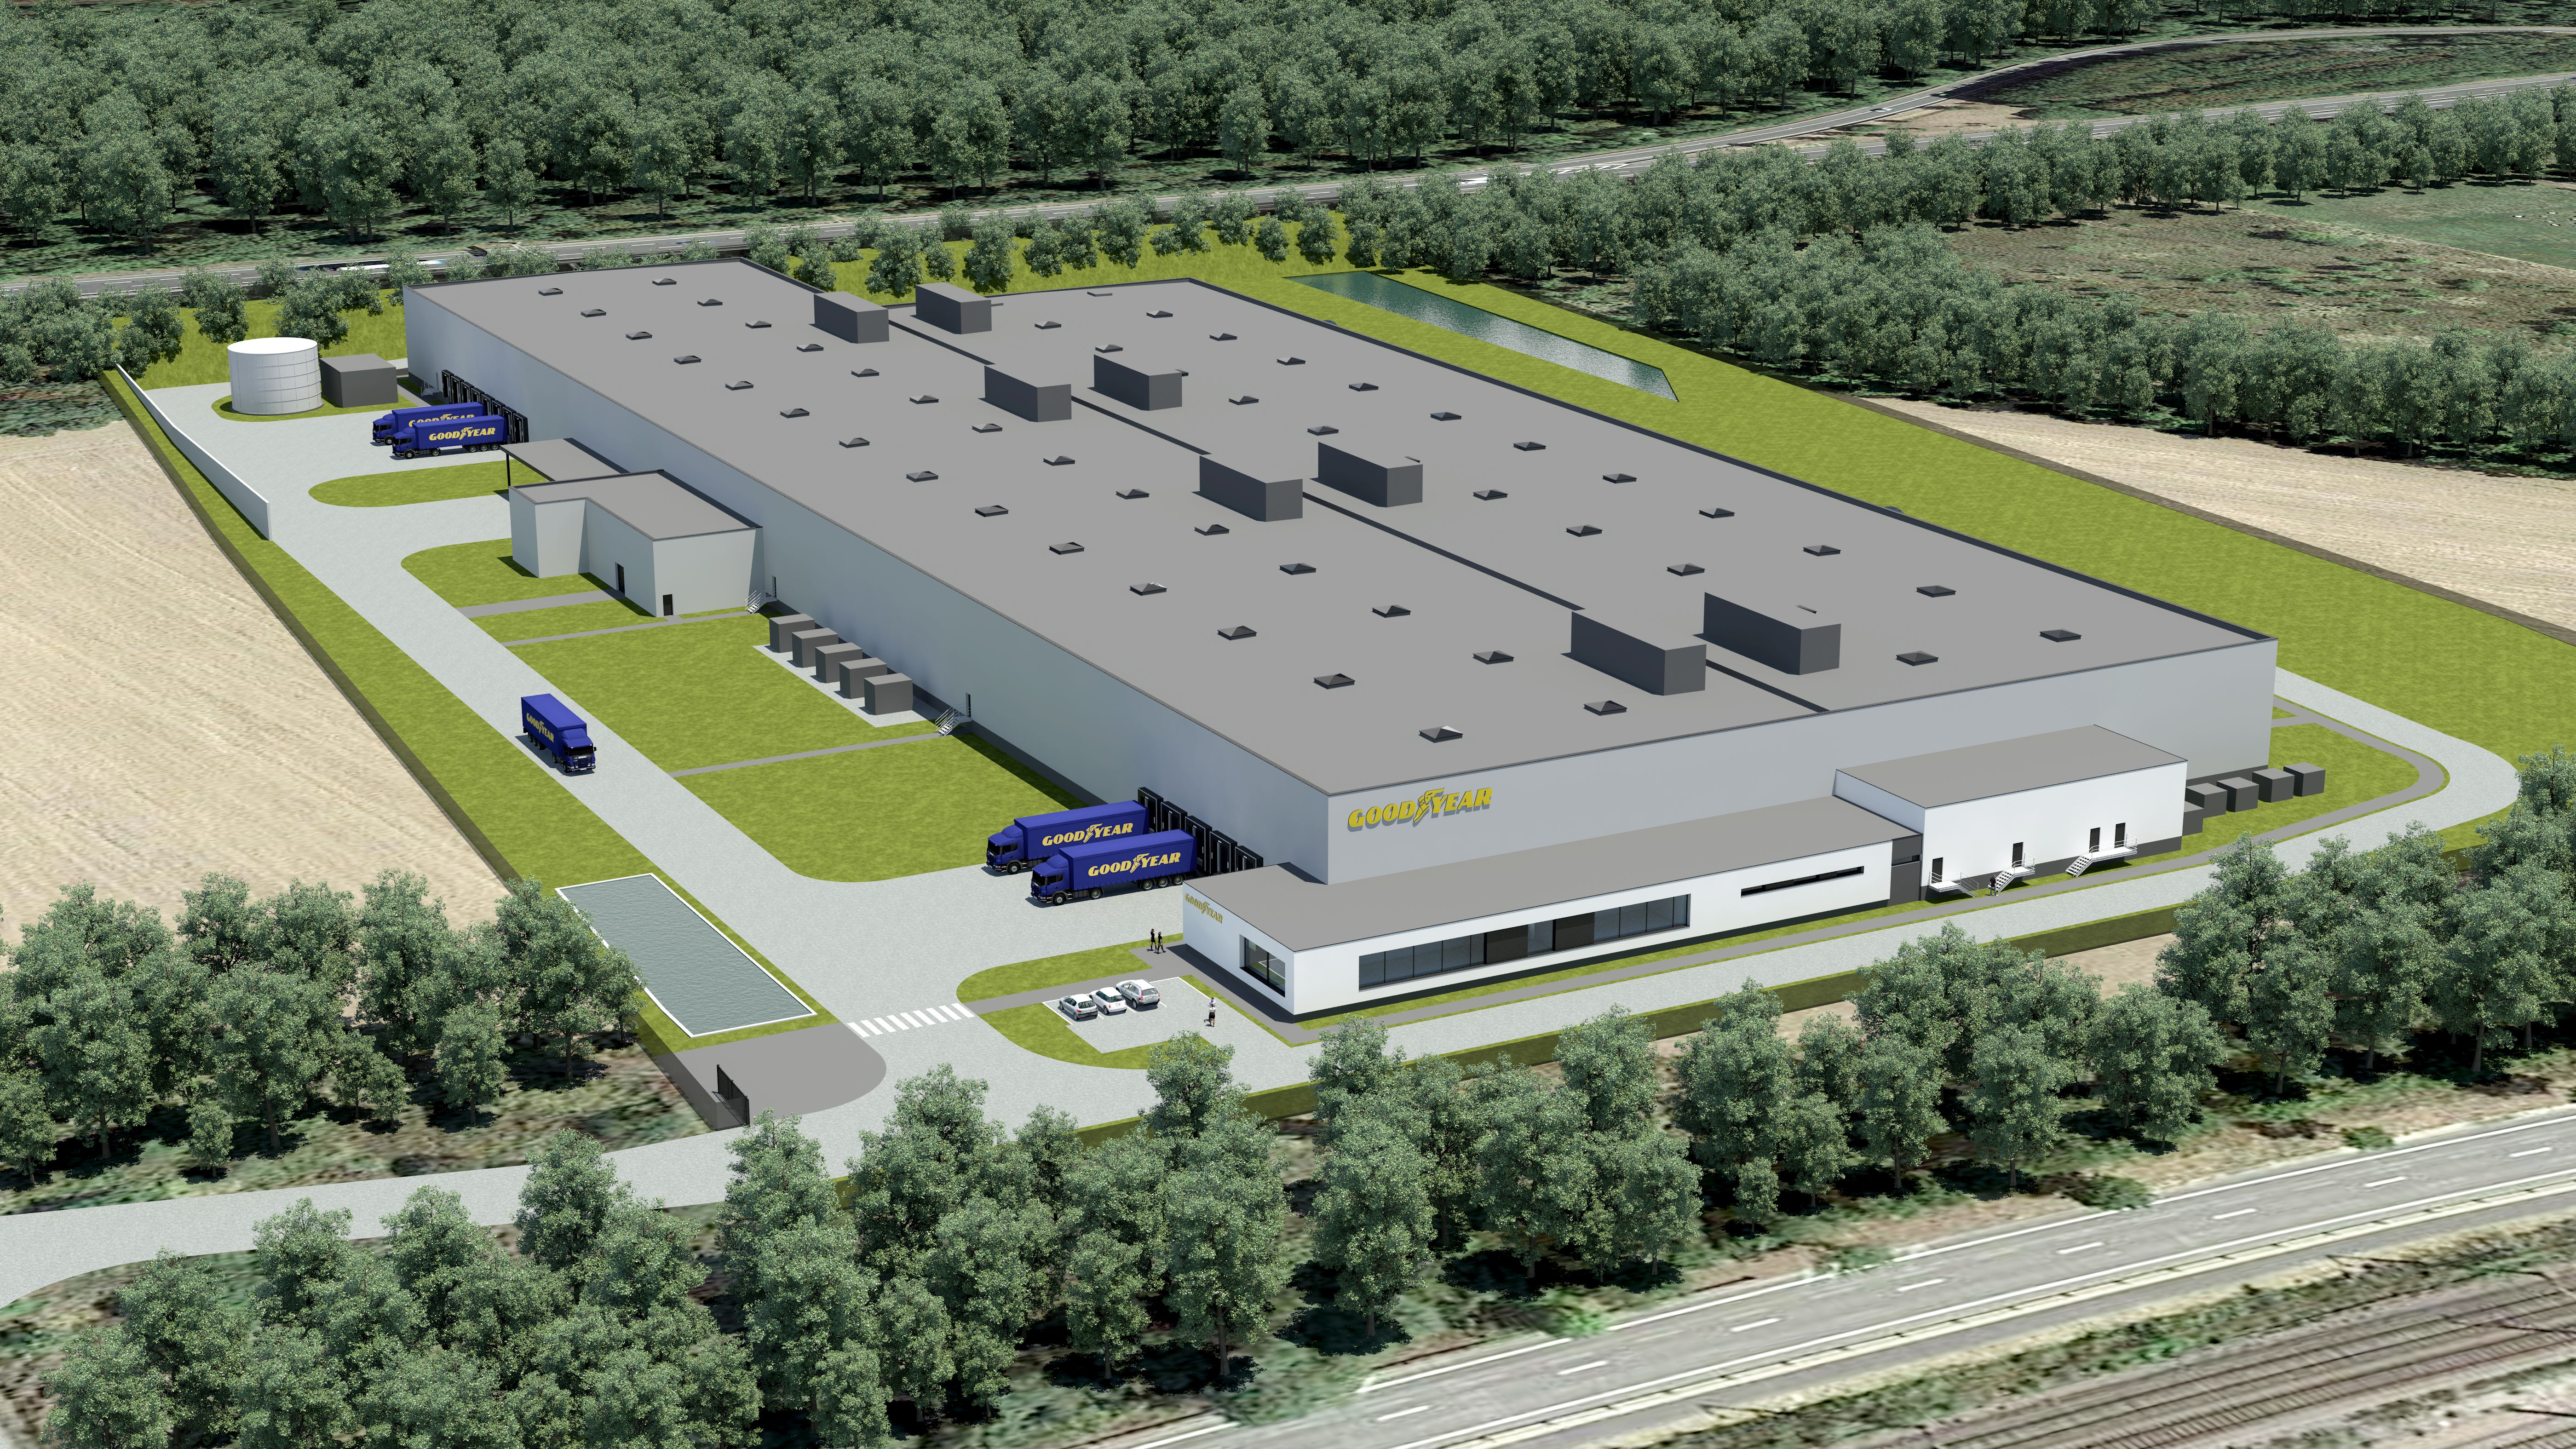 Goodyear Will Build a Highly-Automated Tire Plant in Luxembourg